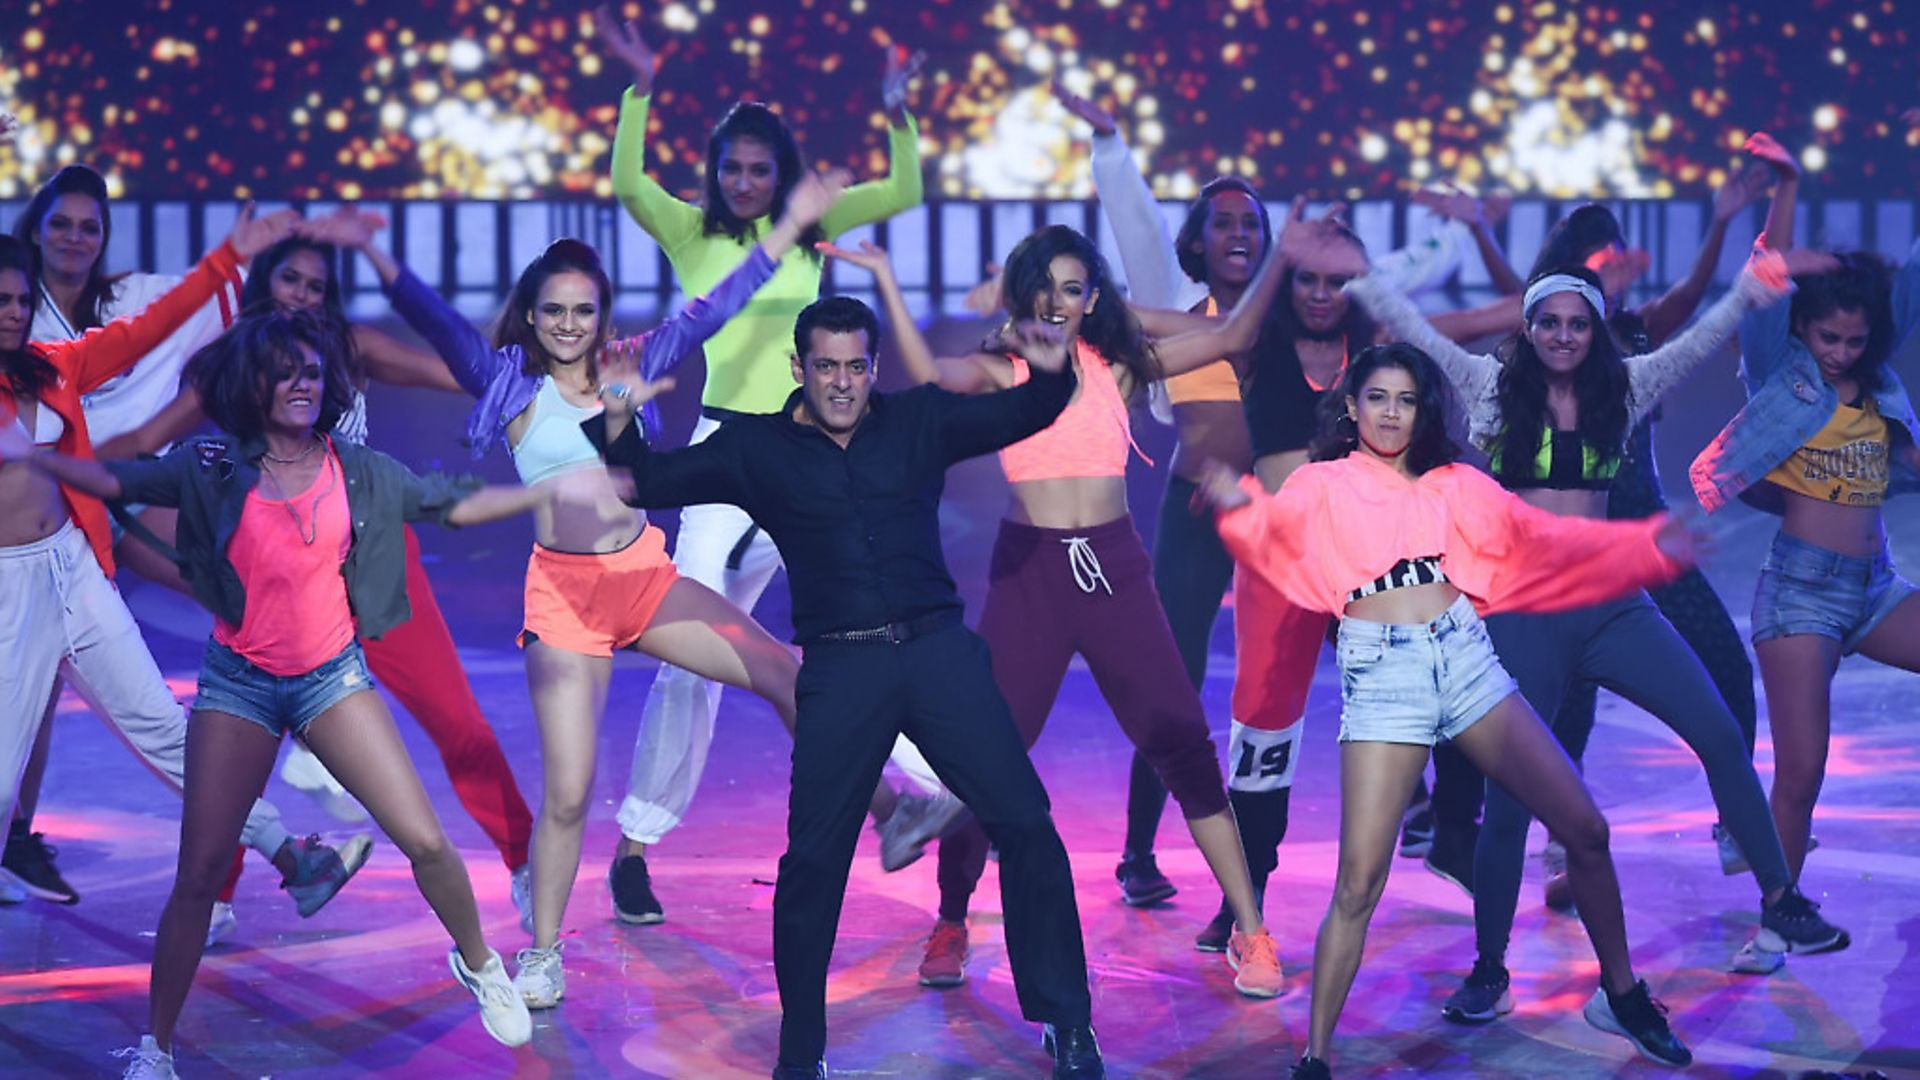 Bollywood actor Salman Khan (C) performs on stage during the 20th International Indian Film Academy (IIFA) Awards at NSCI Dome in Mumbai early on September 19, 2019. Photo: INDRANIL MUKHERJEE/AFP via Getty Images - Credit: AFP via Getty Images